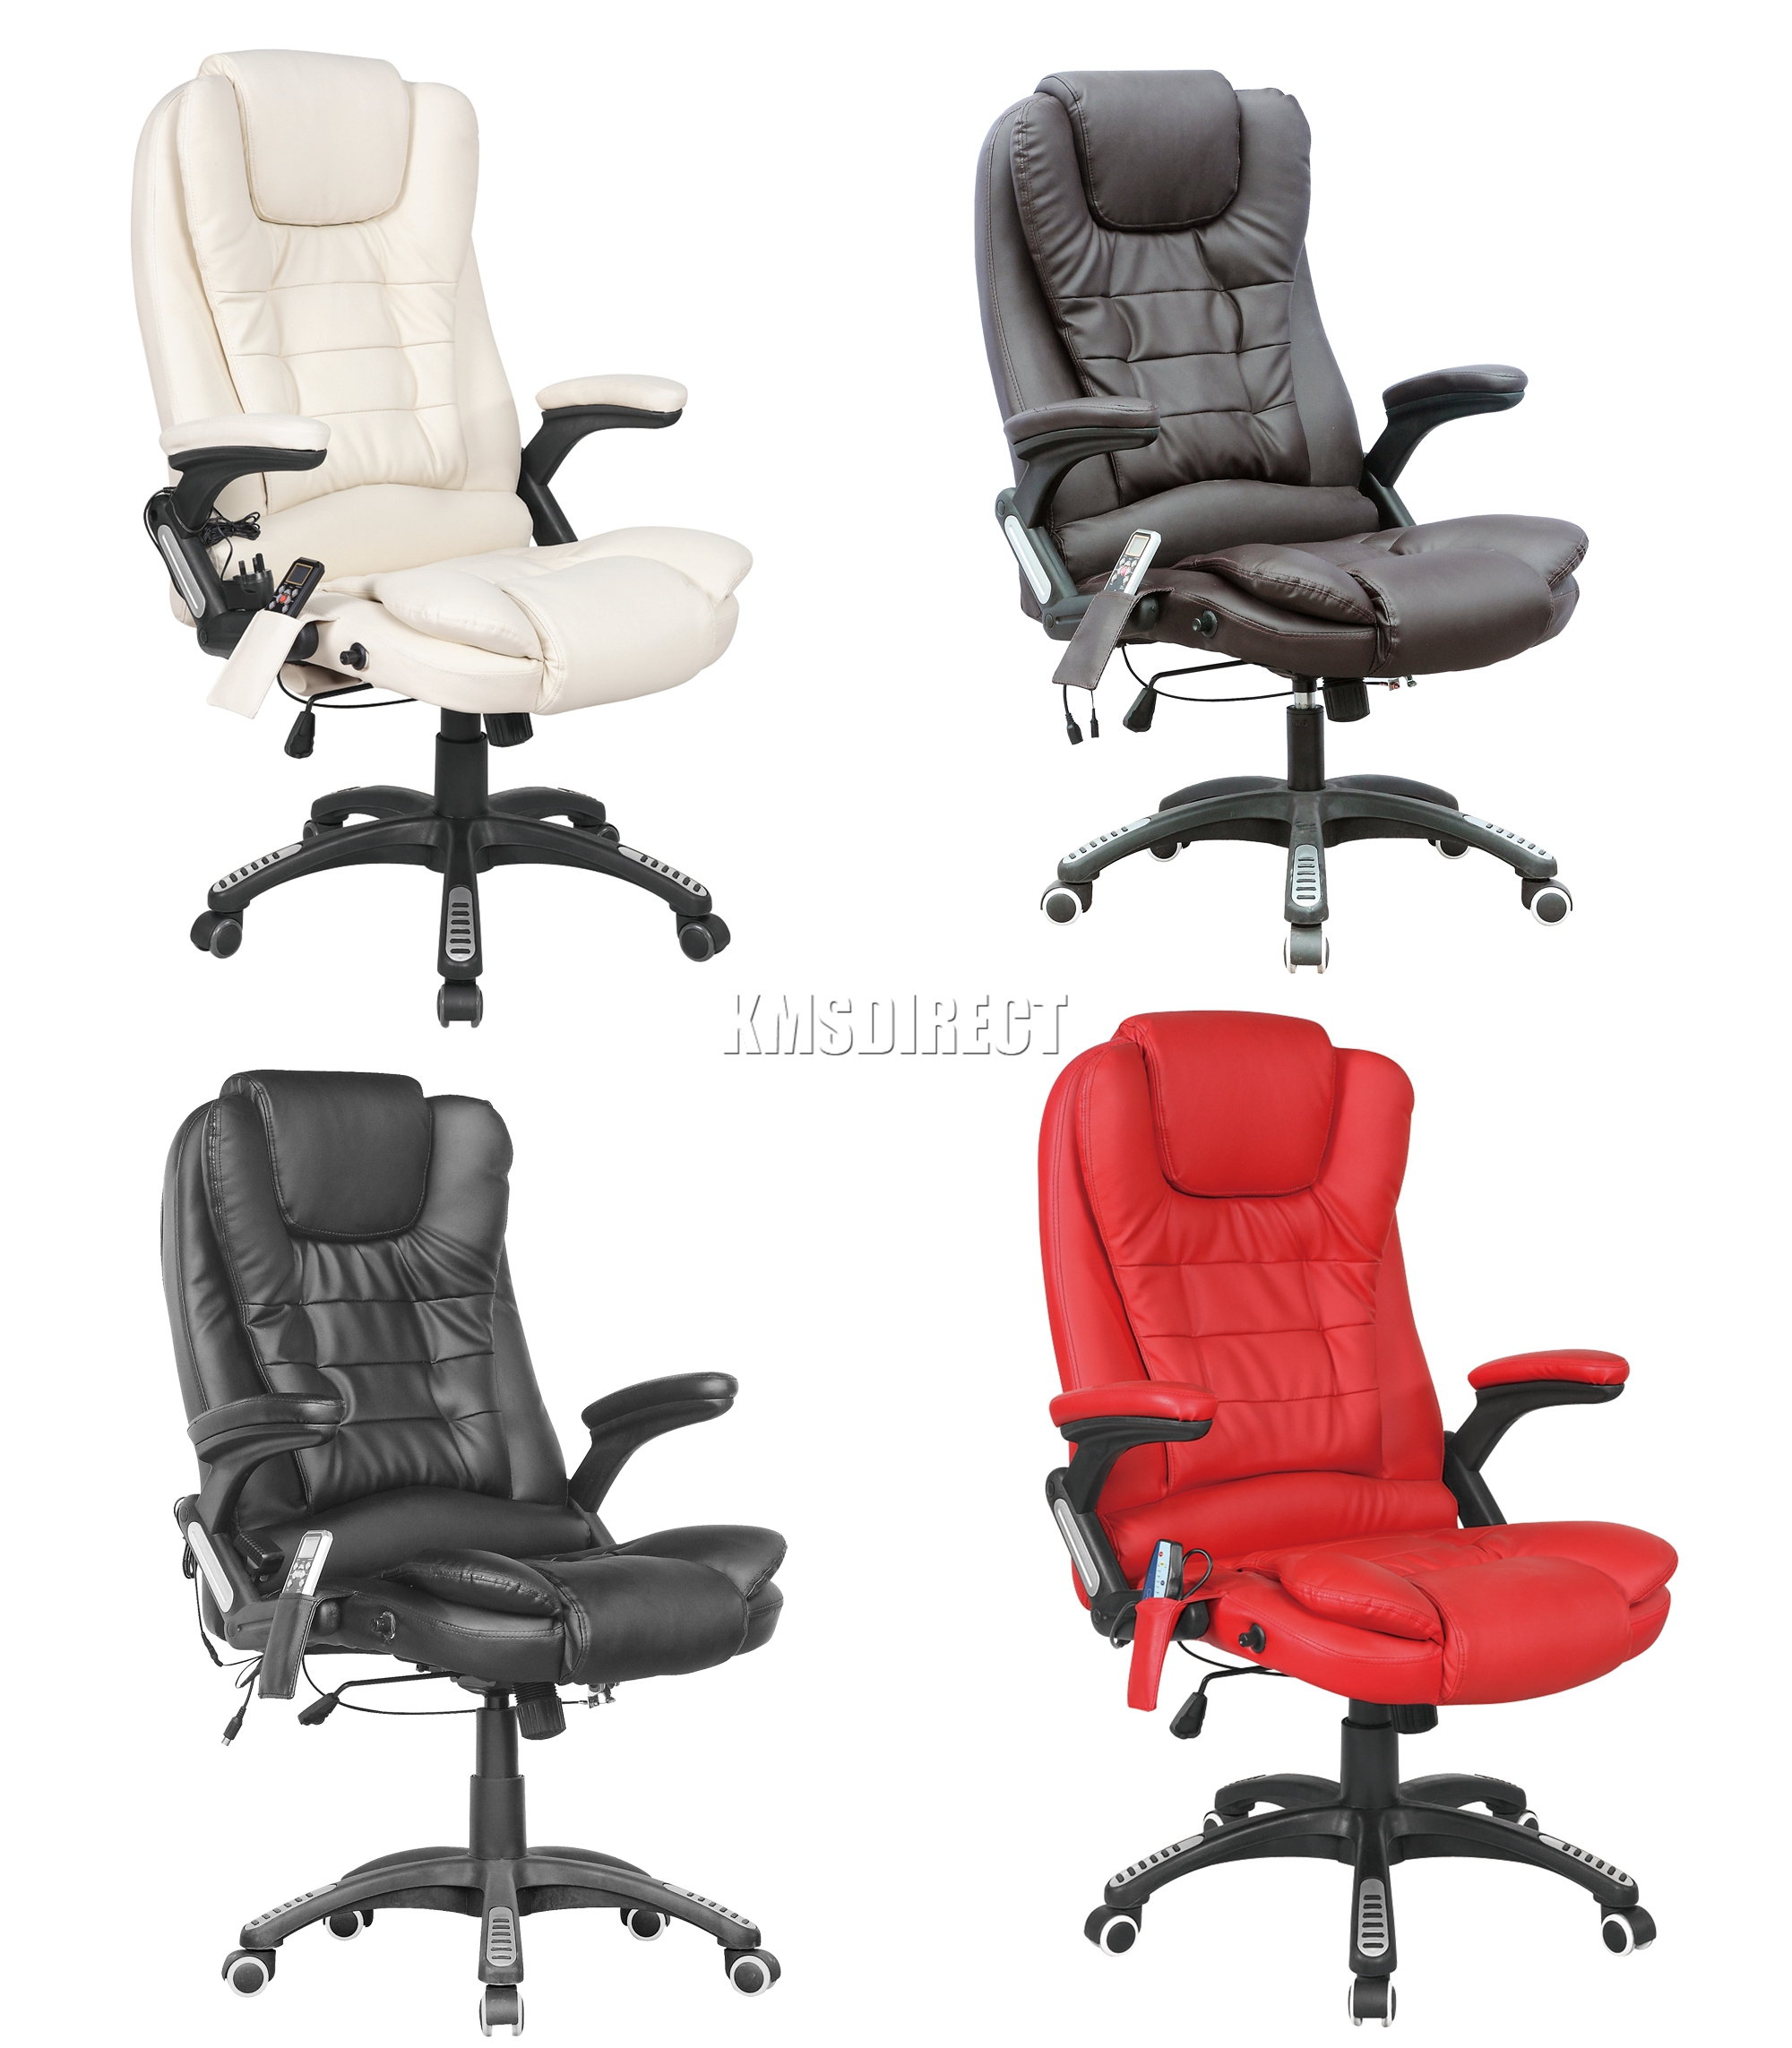 Office Chair Massager Details About Foxhunter 8025 Leather 6 Point Massage Office Computer Chair Reclining Swivel